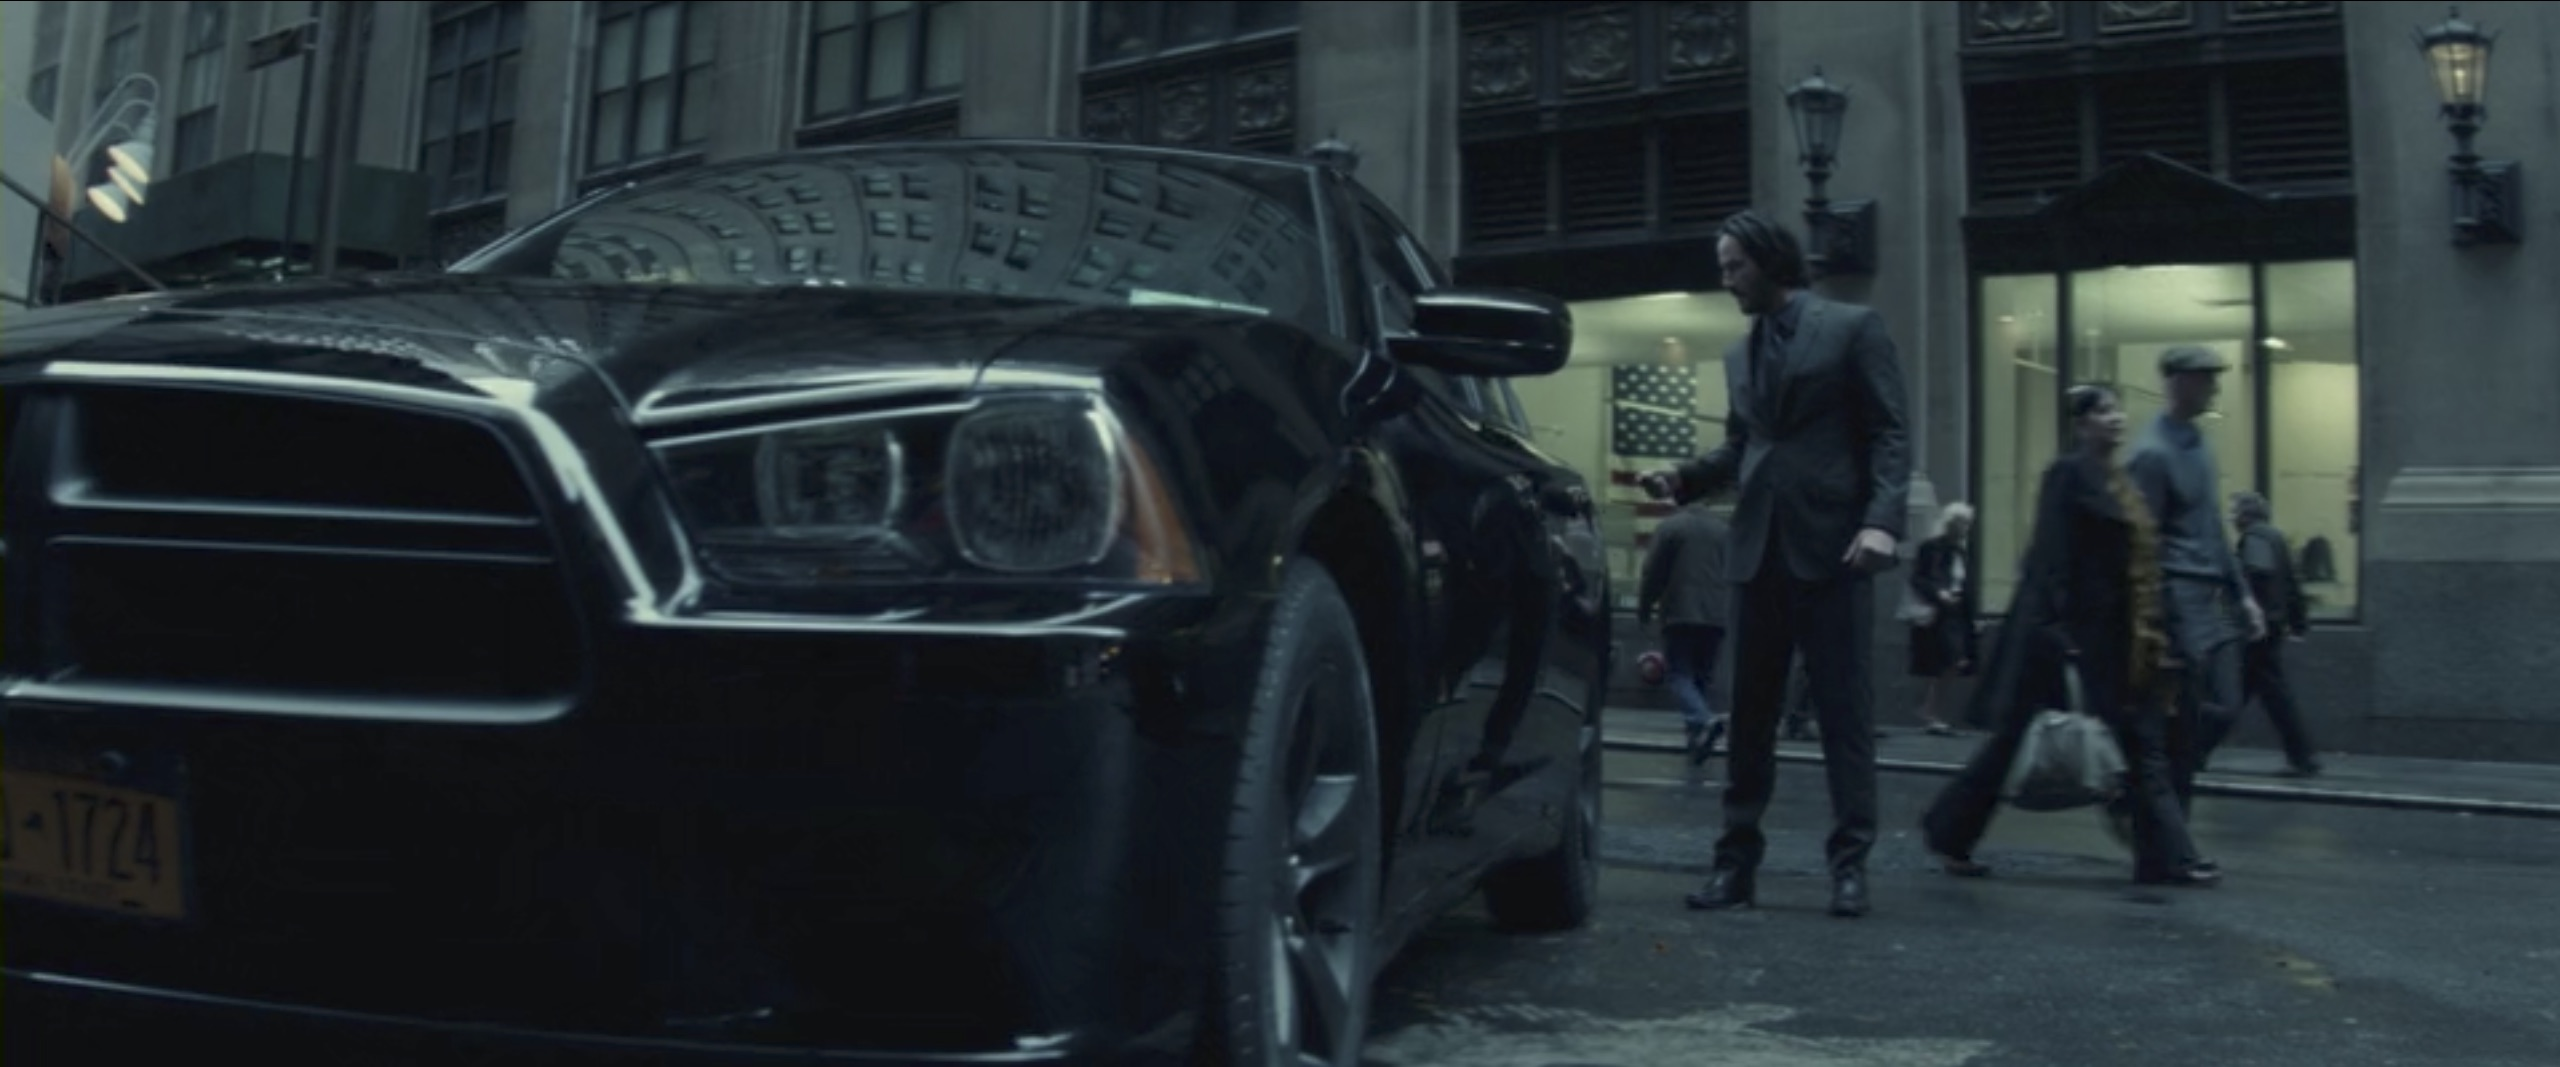 John Wick Charger